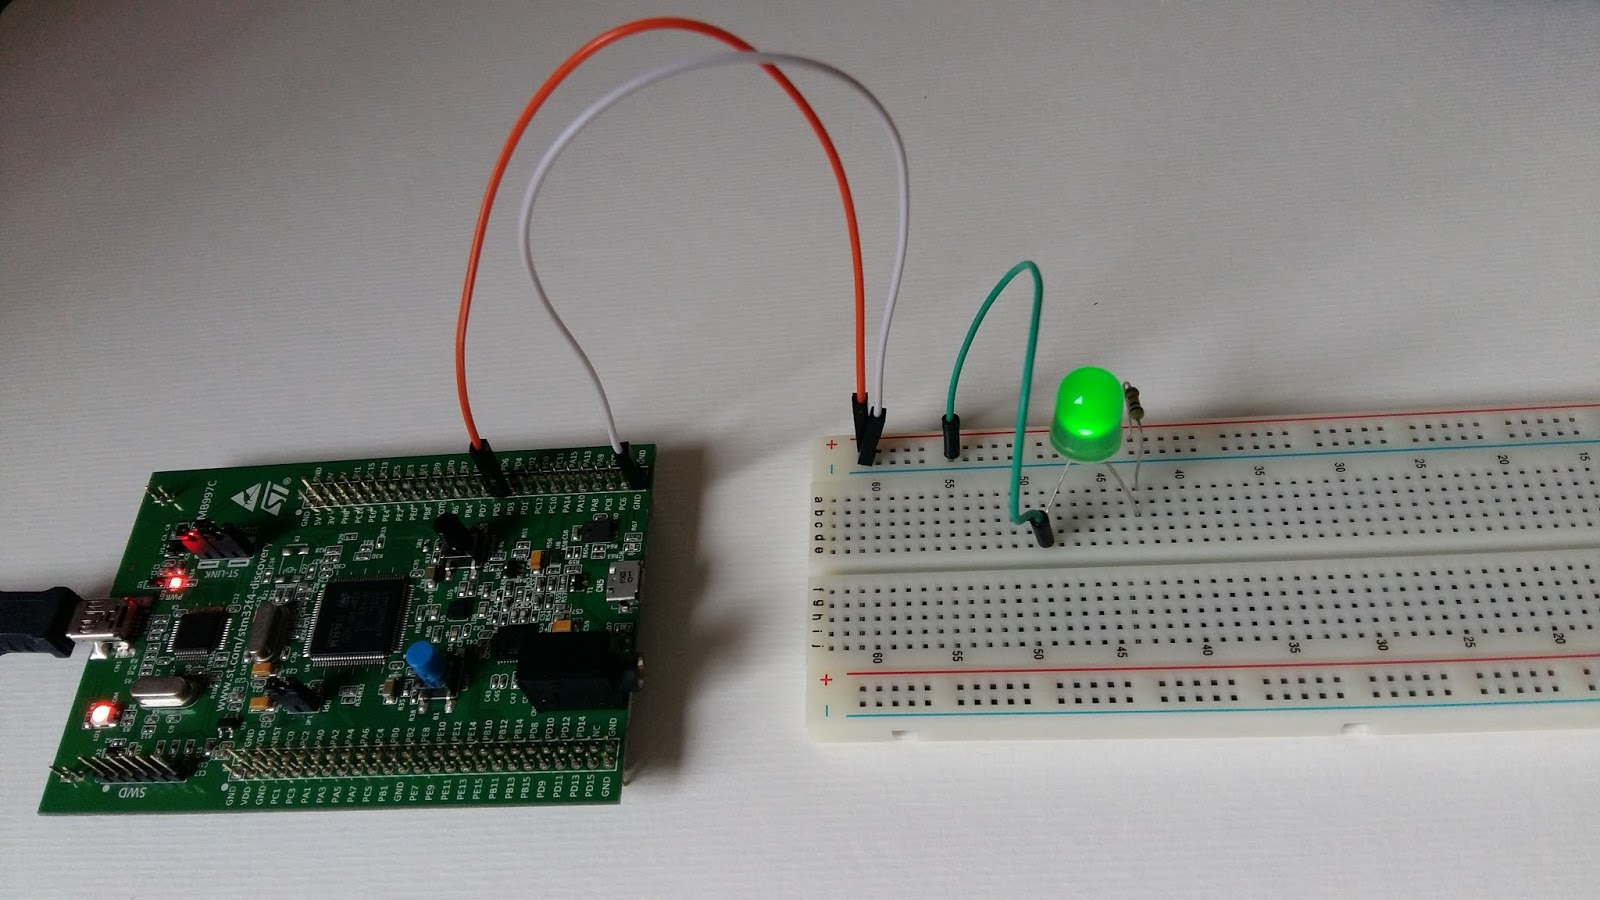 My Tech World: Controlling the external LED with the STM32F4